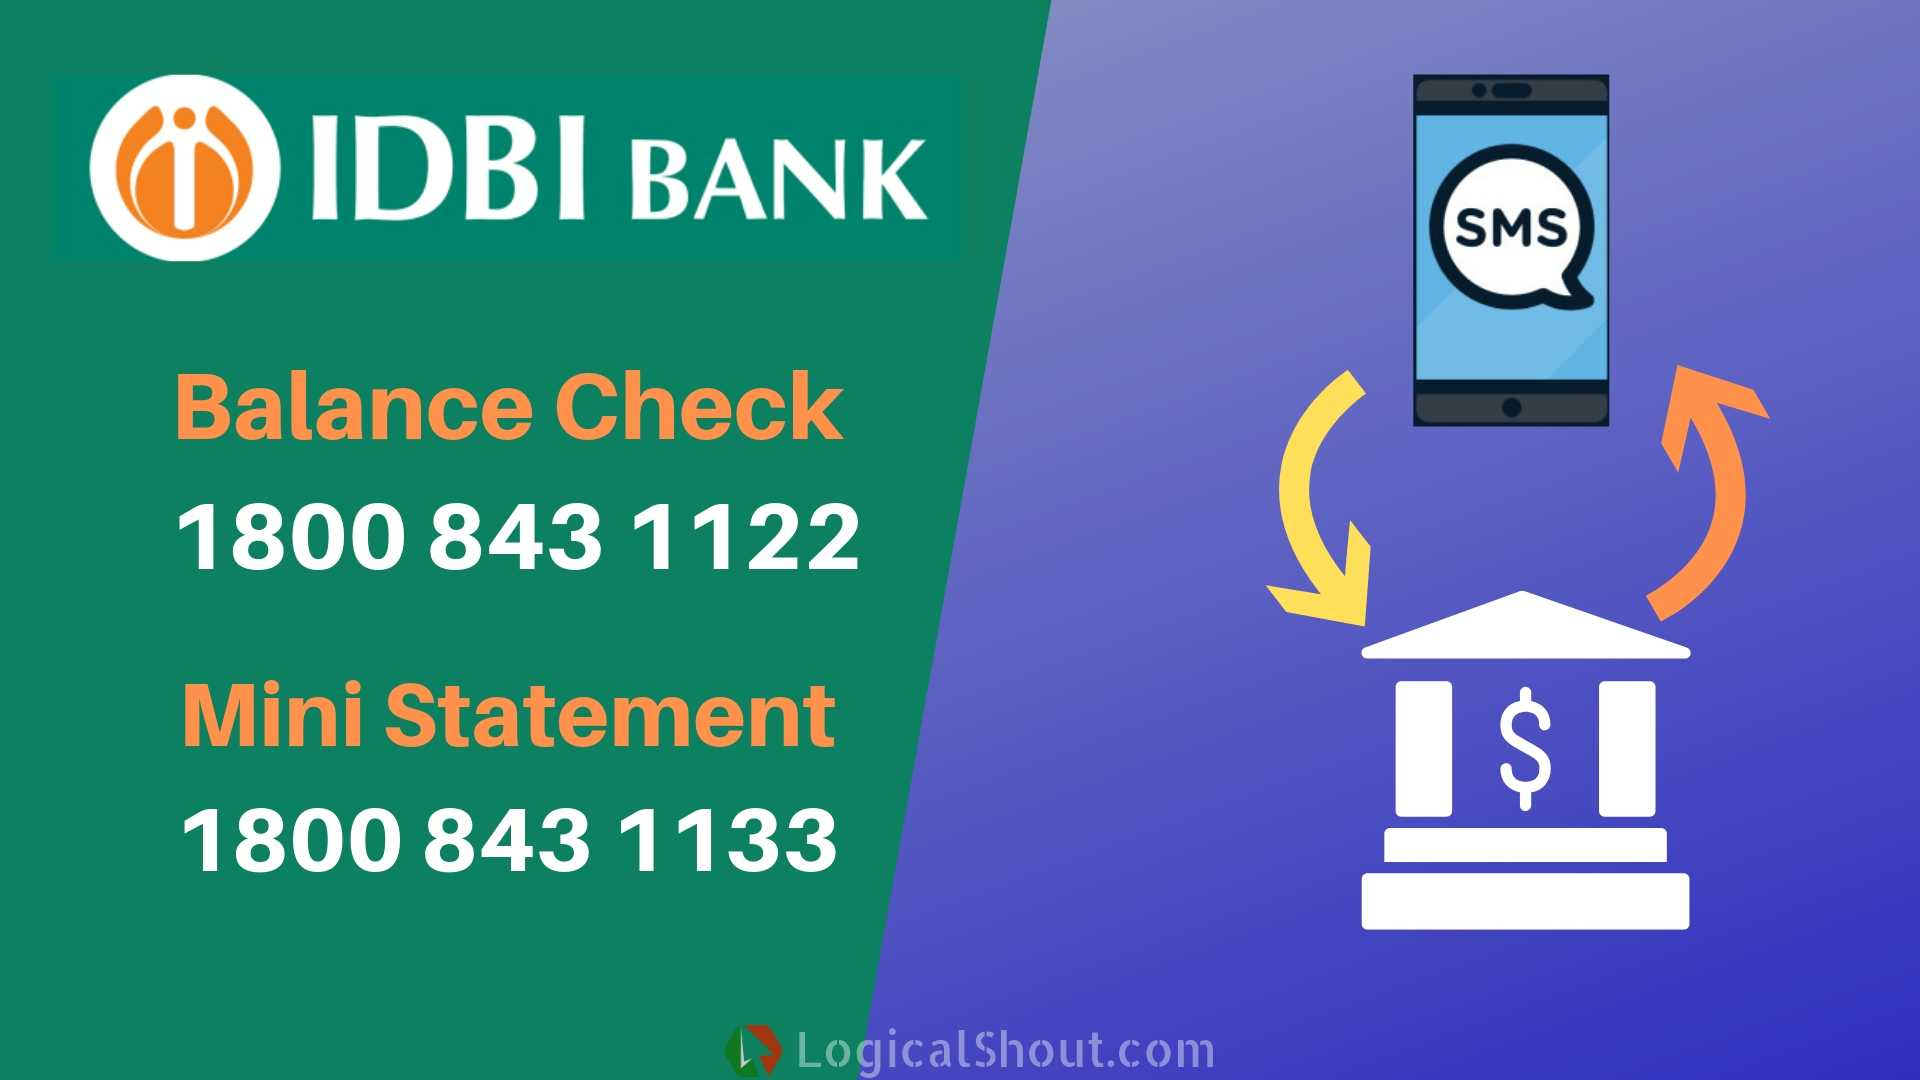 IDBI Bank Balance Check Number